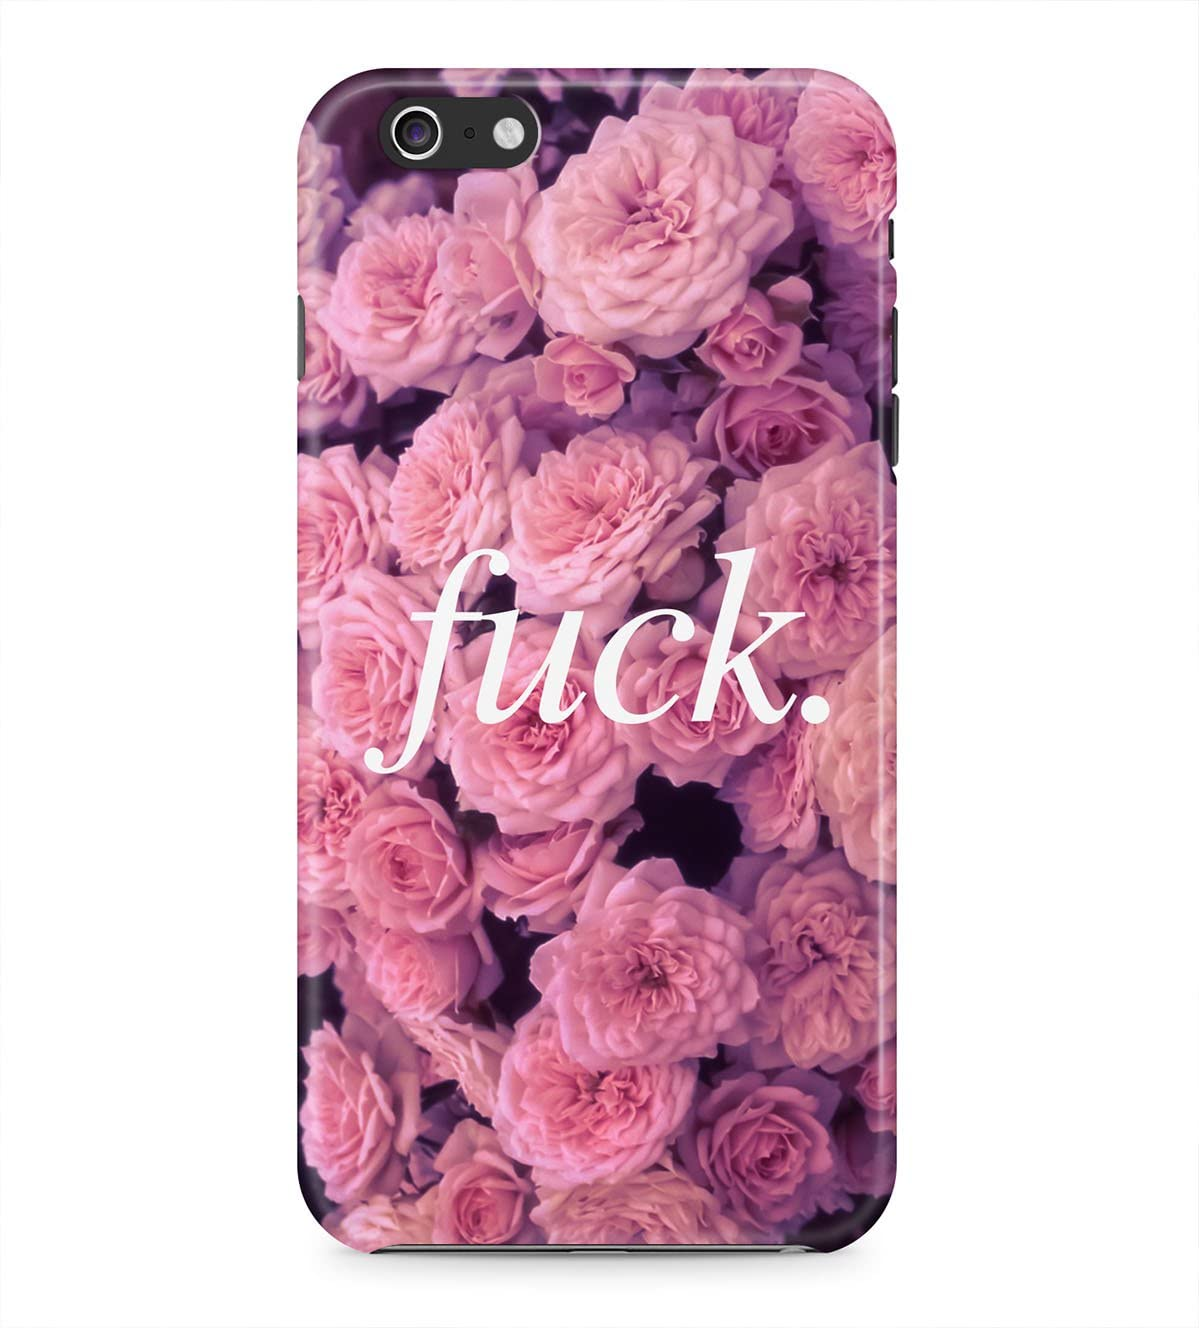 Fuck Quote Pink Roses Floral Tumblr Retro Rad Indie Boho Hard